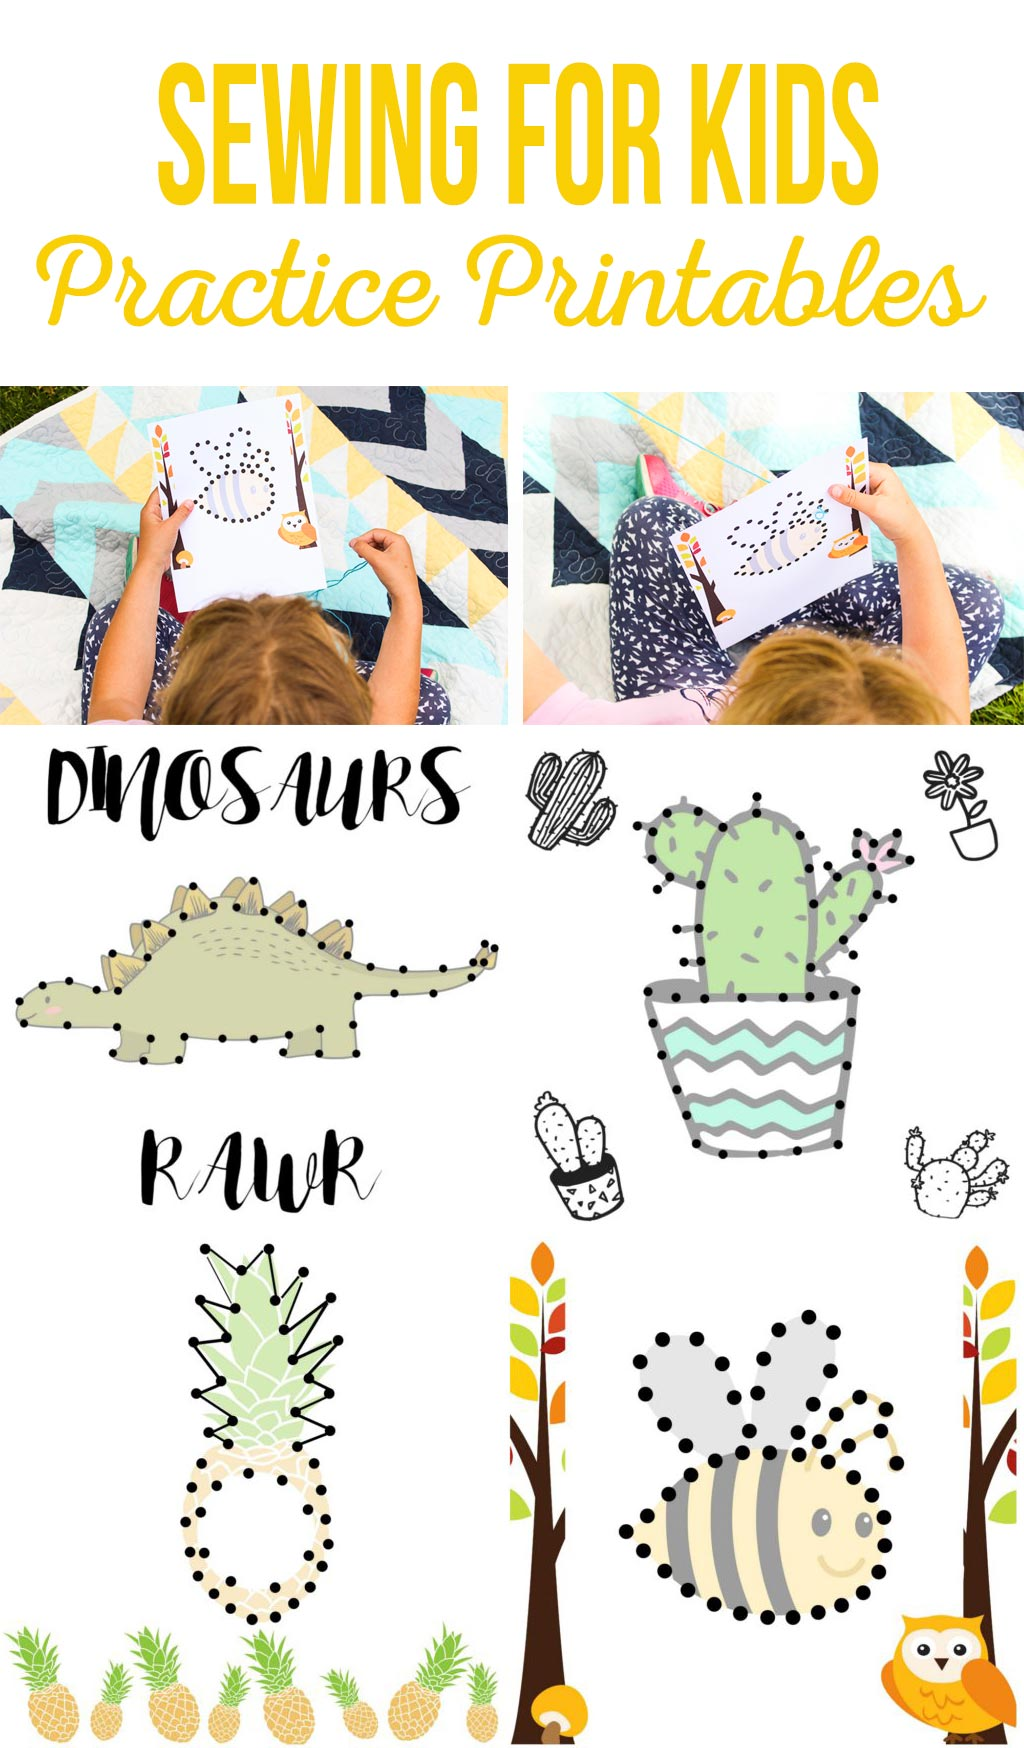 Sewing for Kids Practice Printables   A fun, simple kids activity that teaches coordination and sewing skills.